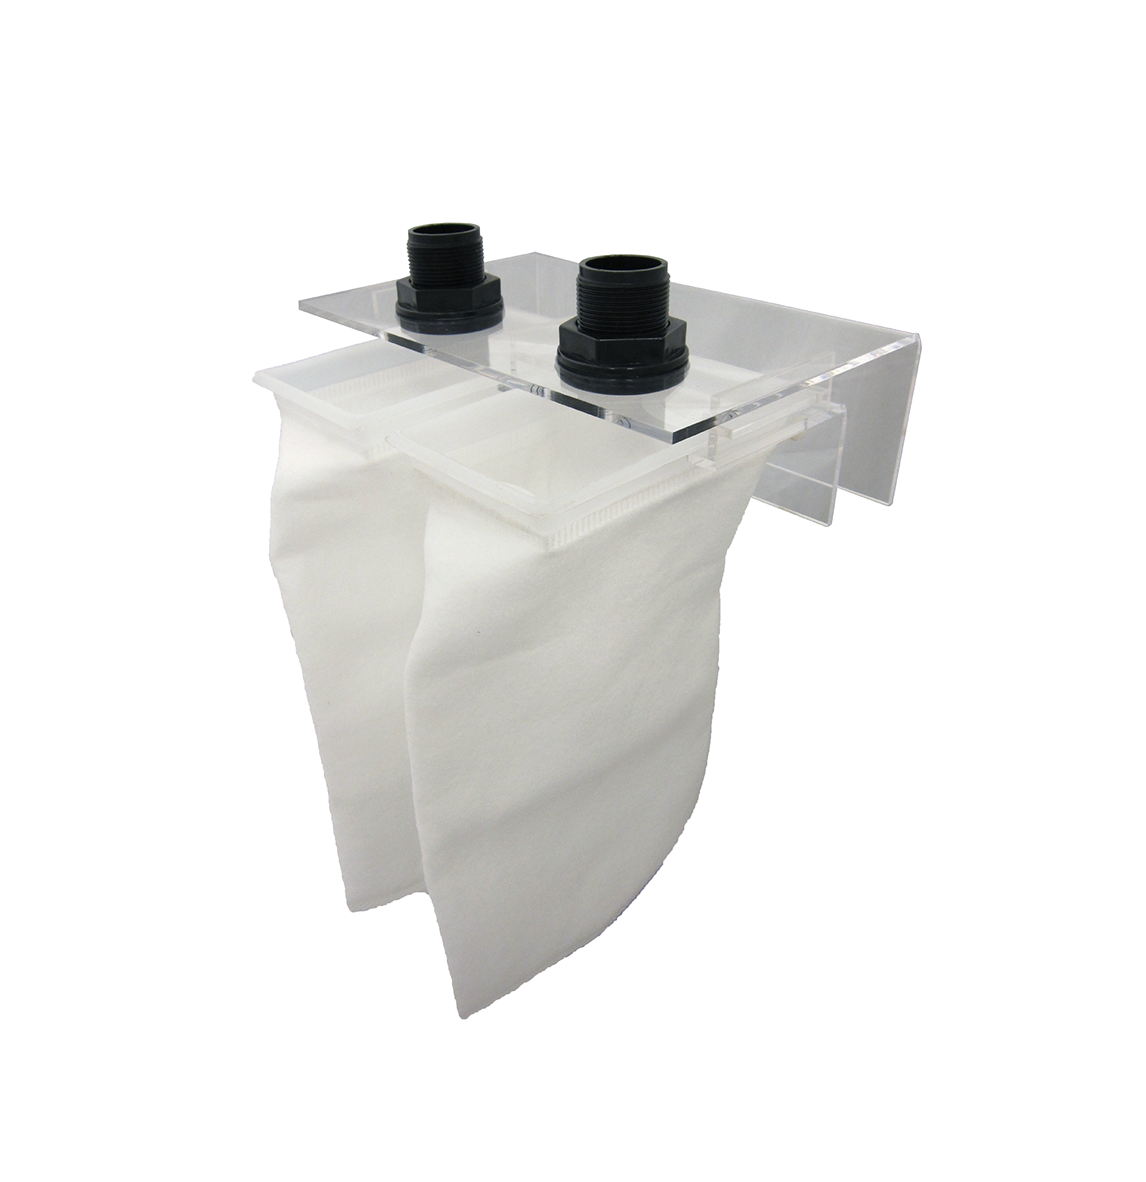 "X-Large Micron Bag Holder   SKU#: AM87803  UPC#: 7-49729-87803-2  Package Dimension: 10.25""x4.5""x8""  Product Dimension: 11.5""x9.5""x4""  Minimum Clearance: 1-3/8""  Capacity: Up to 200 Gallon  Bulkhead Size: 1-Inch  Master Carton Dimension: 17x14x13""  Master pack: 6pcs."